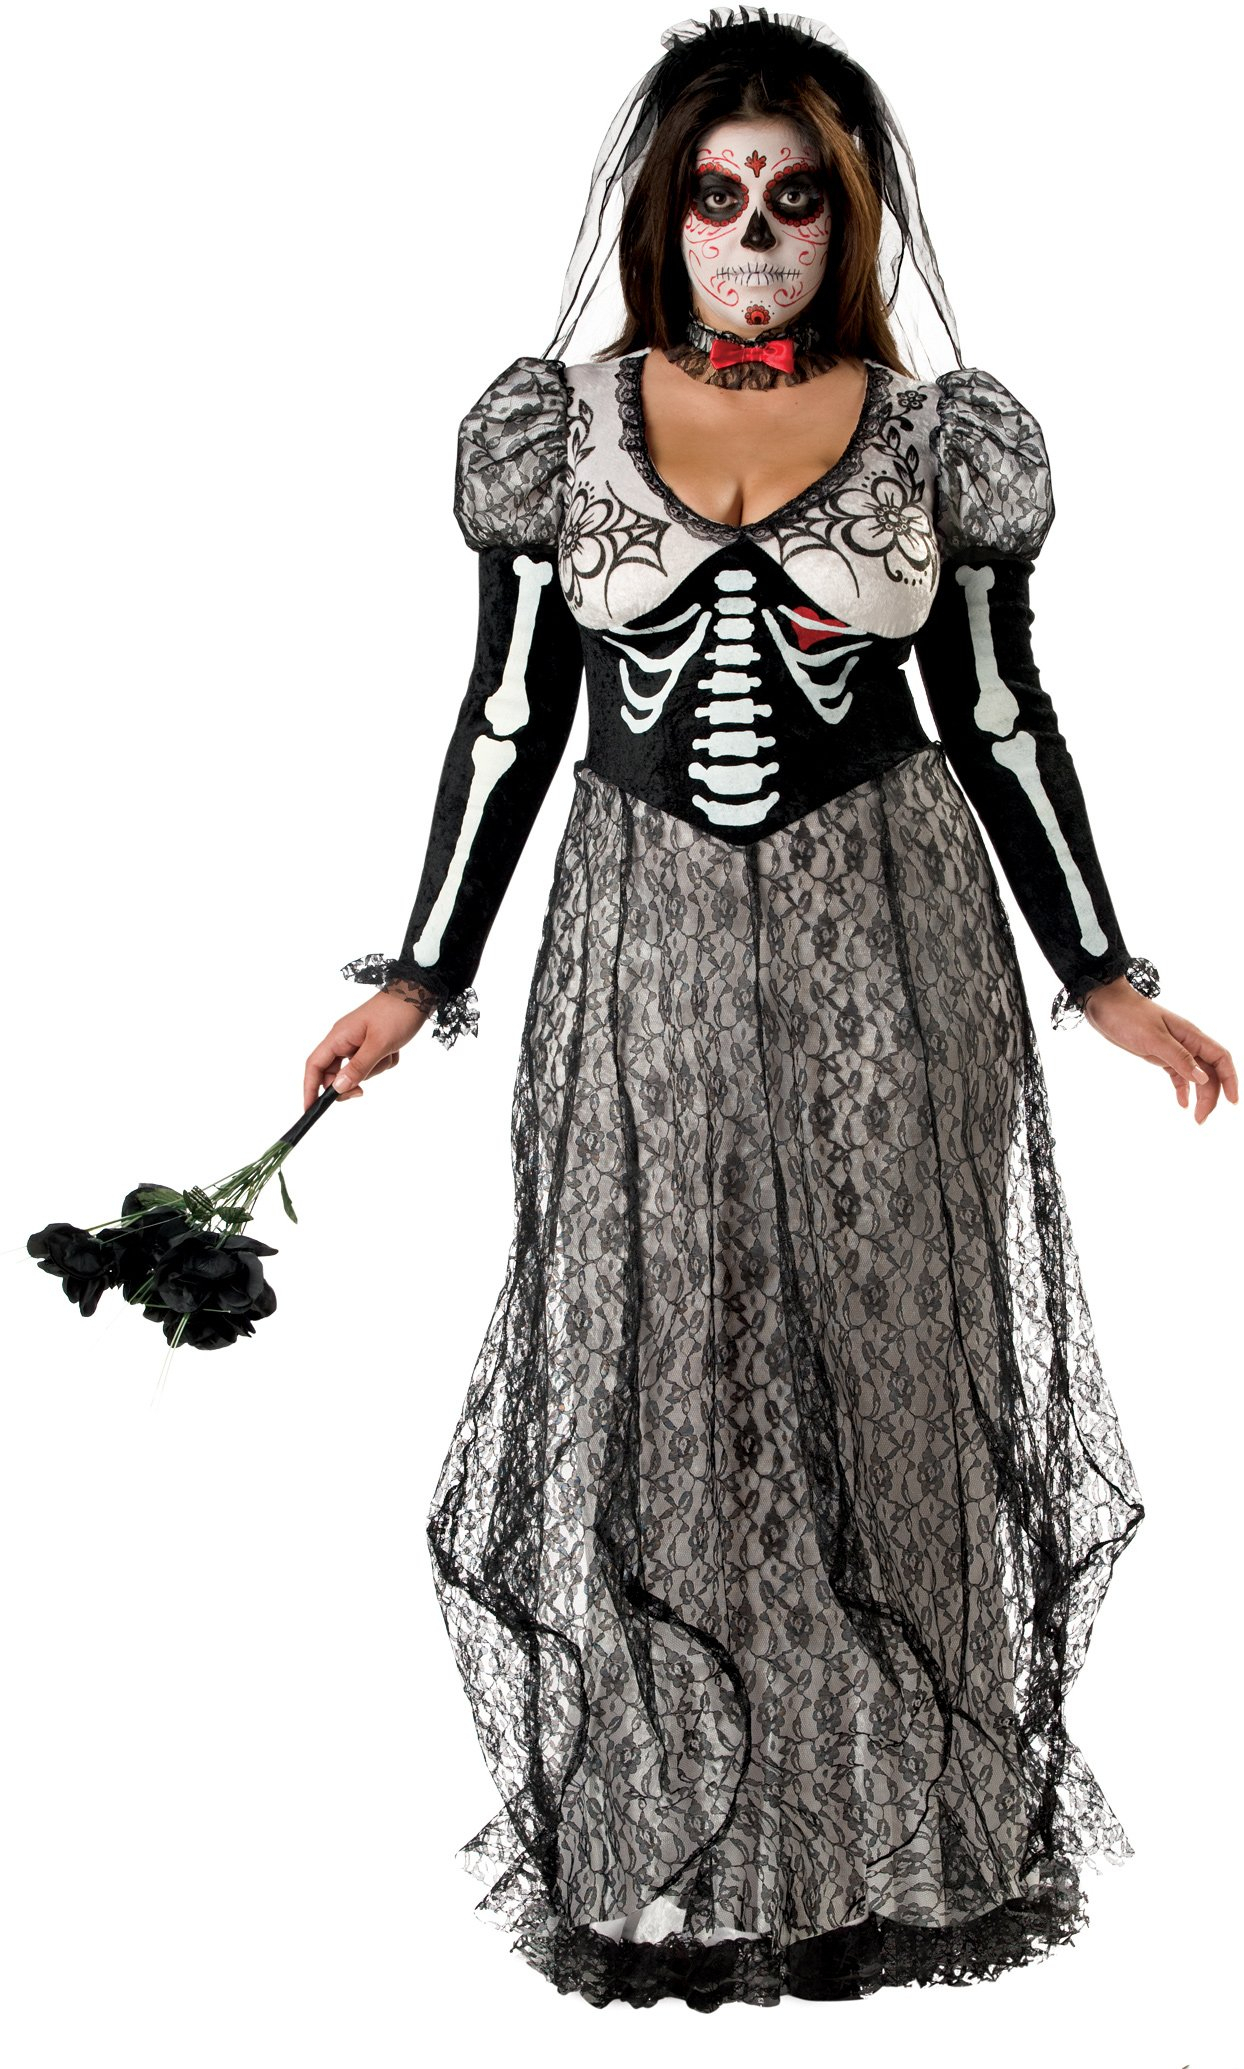 10 Fabulous Day Of The Dead Dress Ideas day of the dead bride plus adult costume horror and gothic costumes 2020